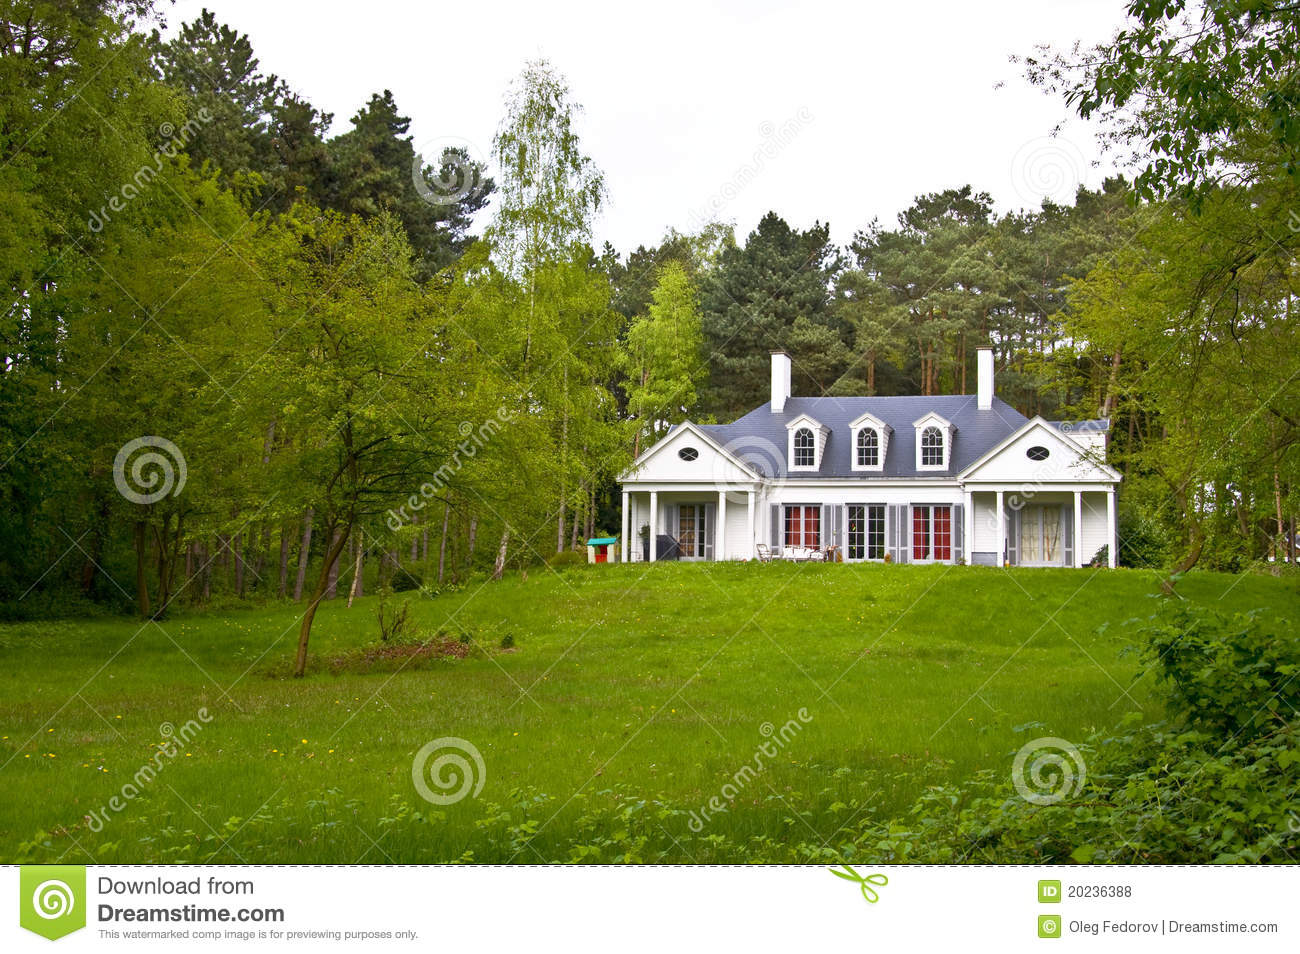 Alone house royalty free stock photos image 20236388 for Free house photos